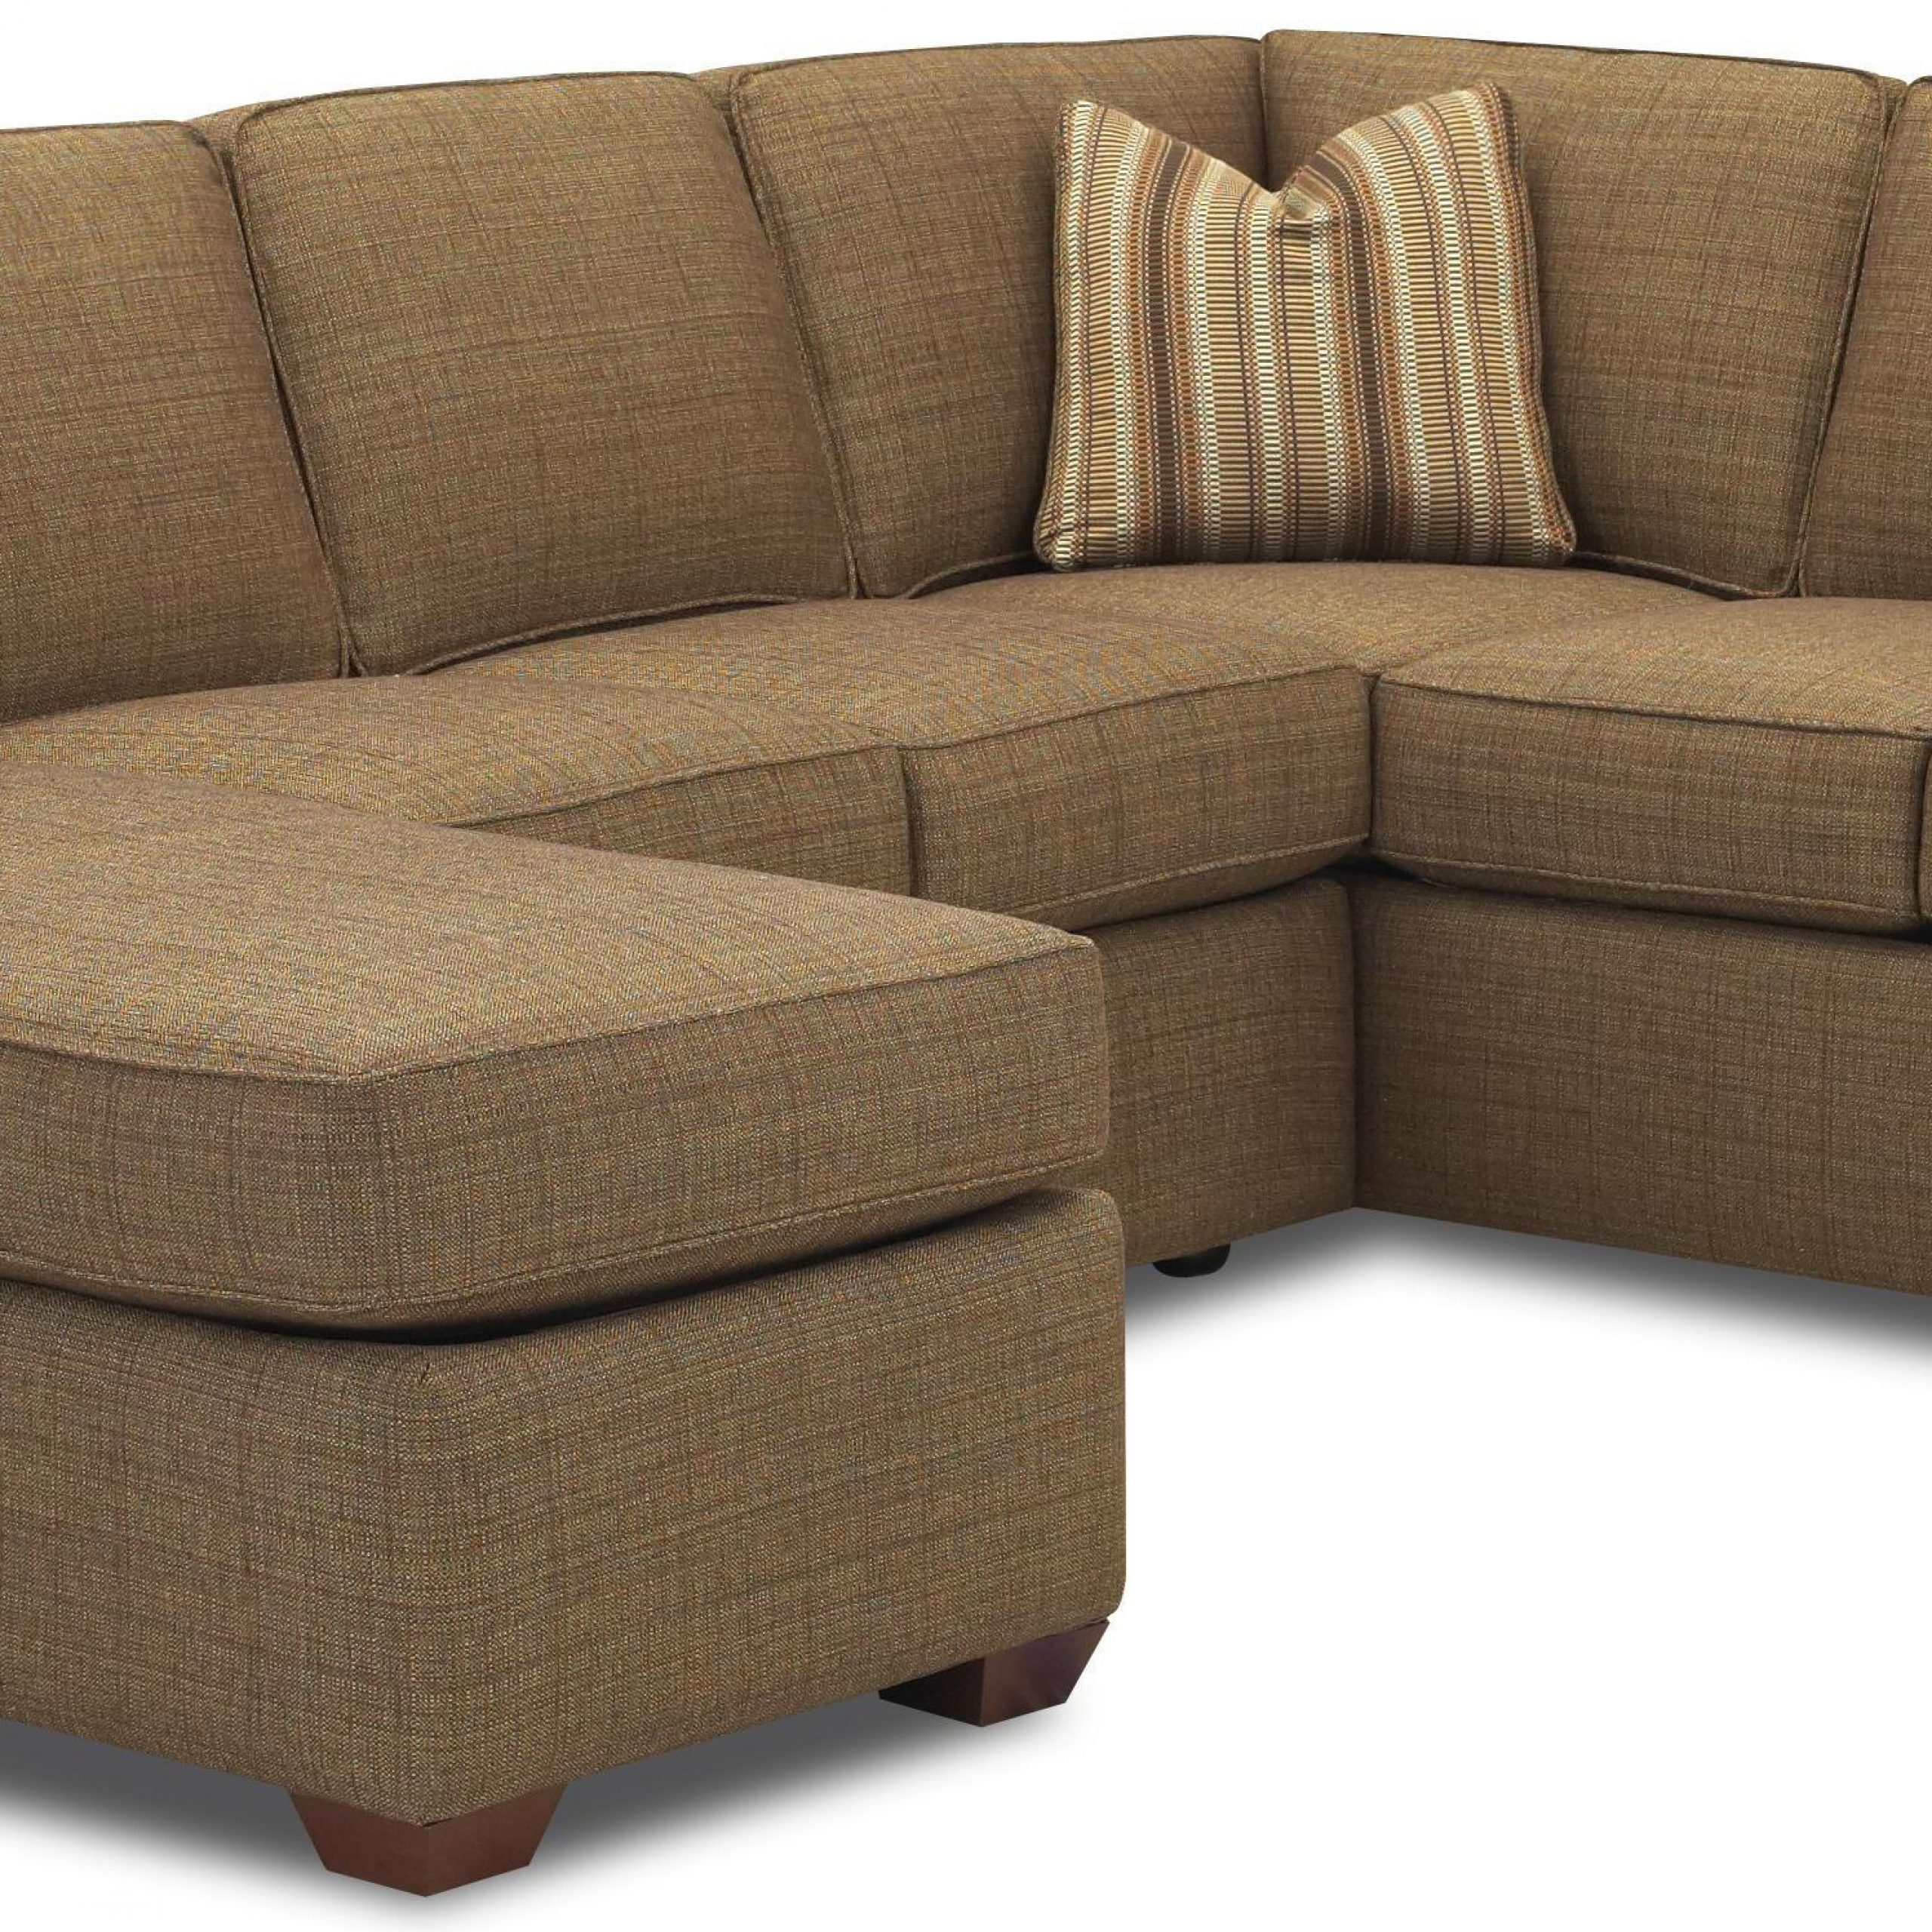 Most Popular Sectional Sofa Group With Right Chaise Loungeklaussner Regarding Copenhagen Reclining Sectional Sofas With Right Storage Chaise (View 14 of 25)